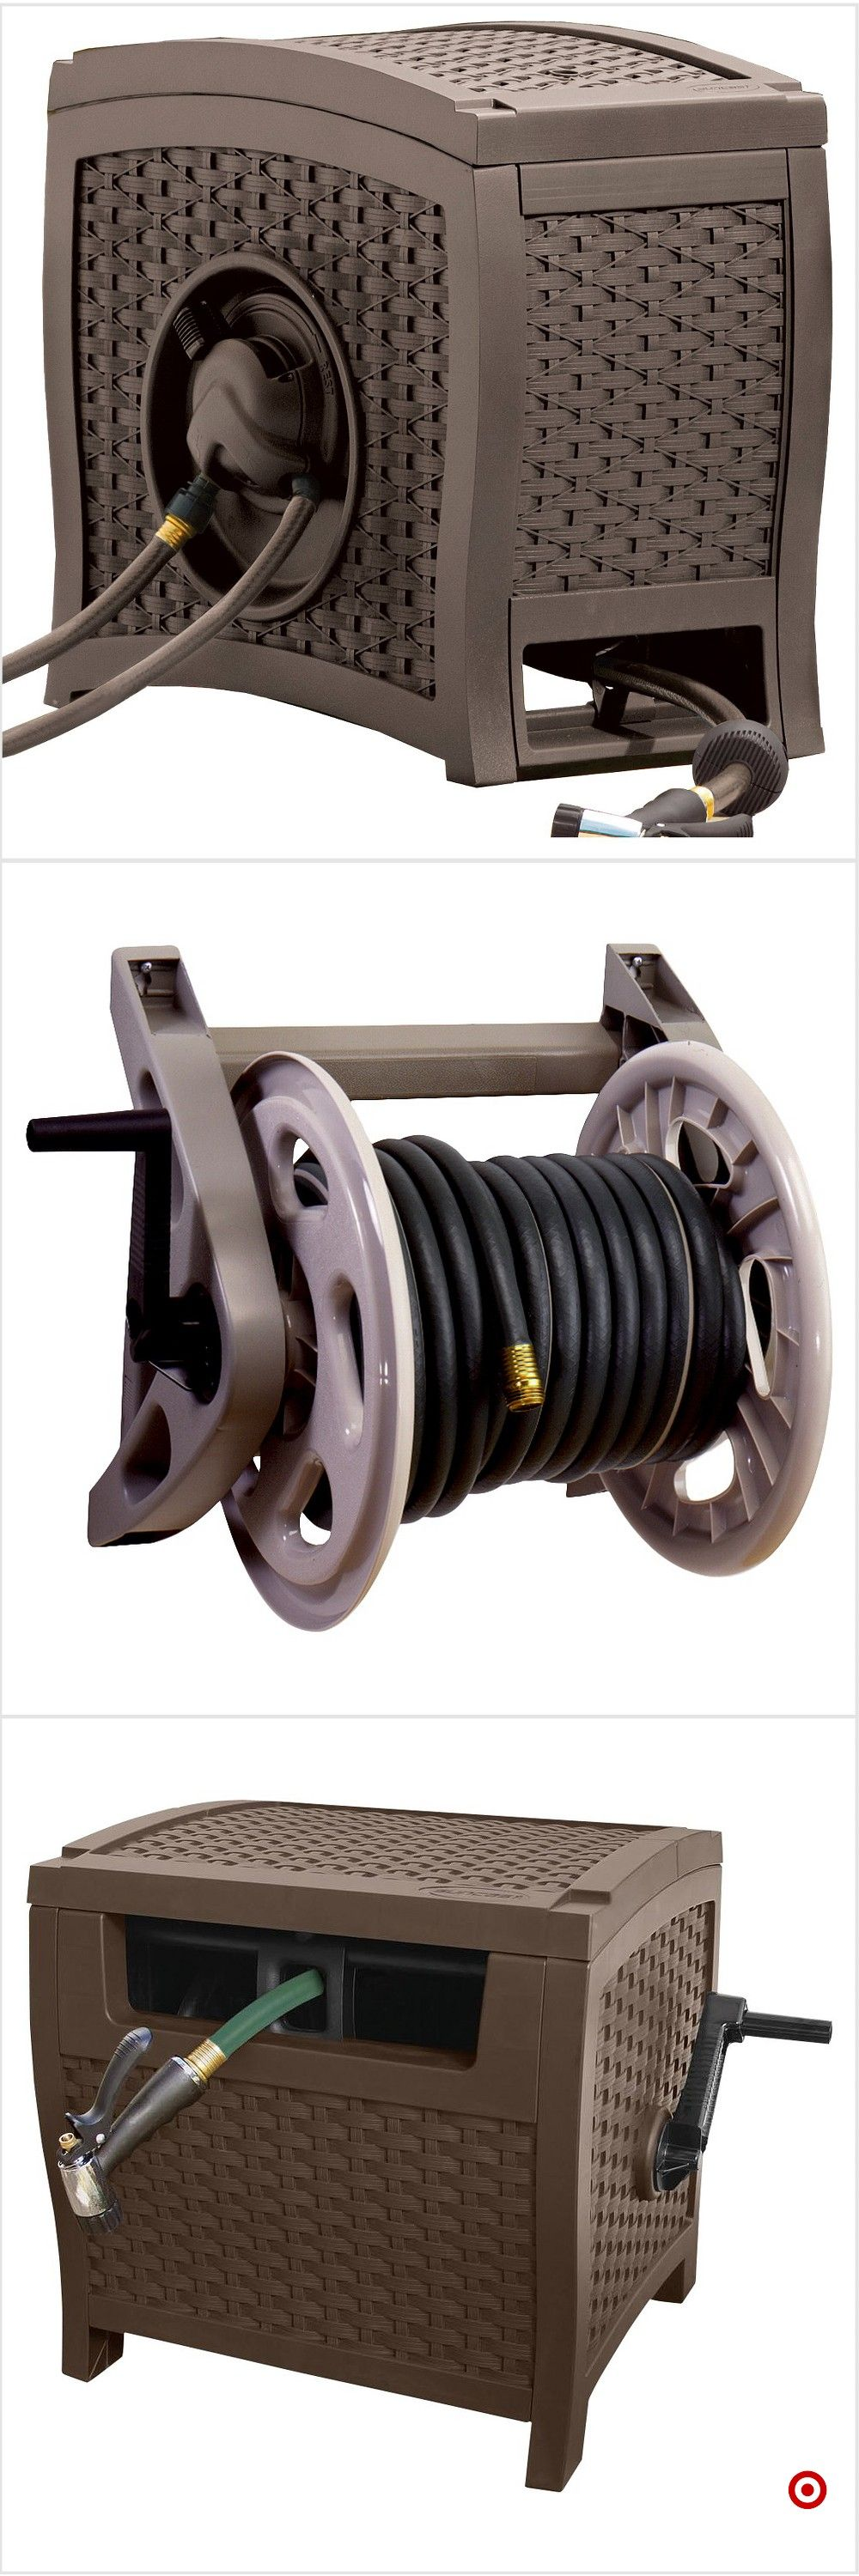 Shop Target for hose reel you will love at great low